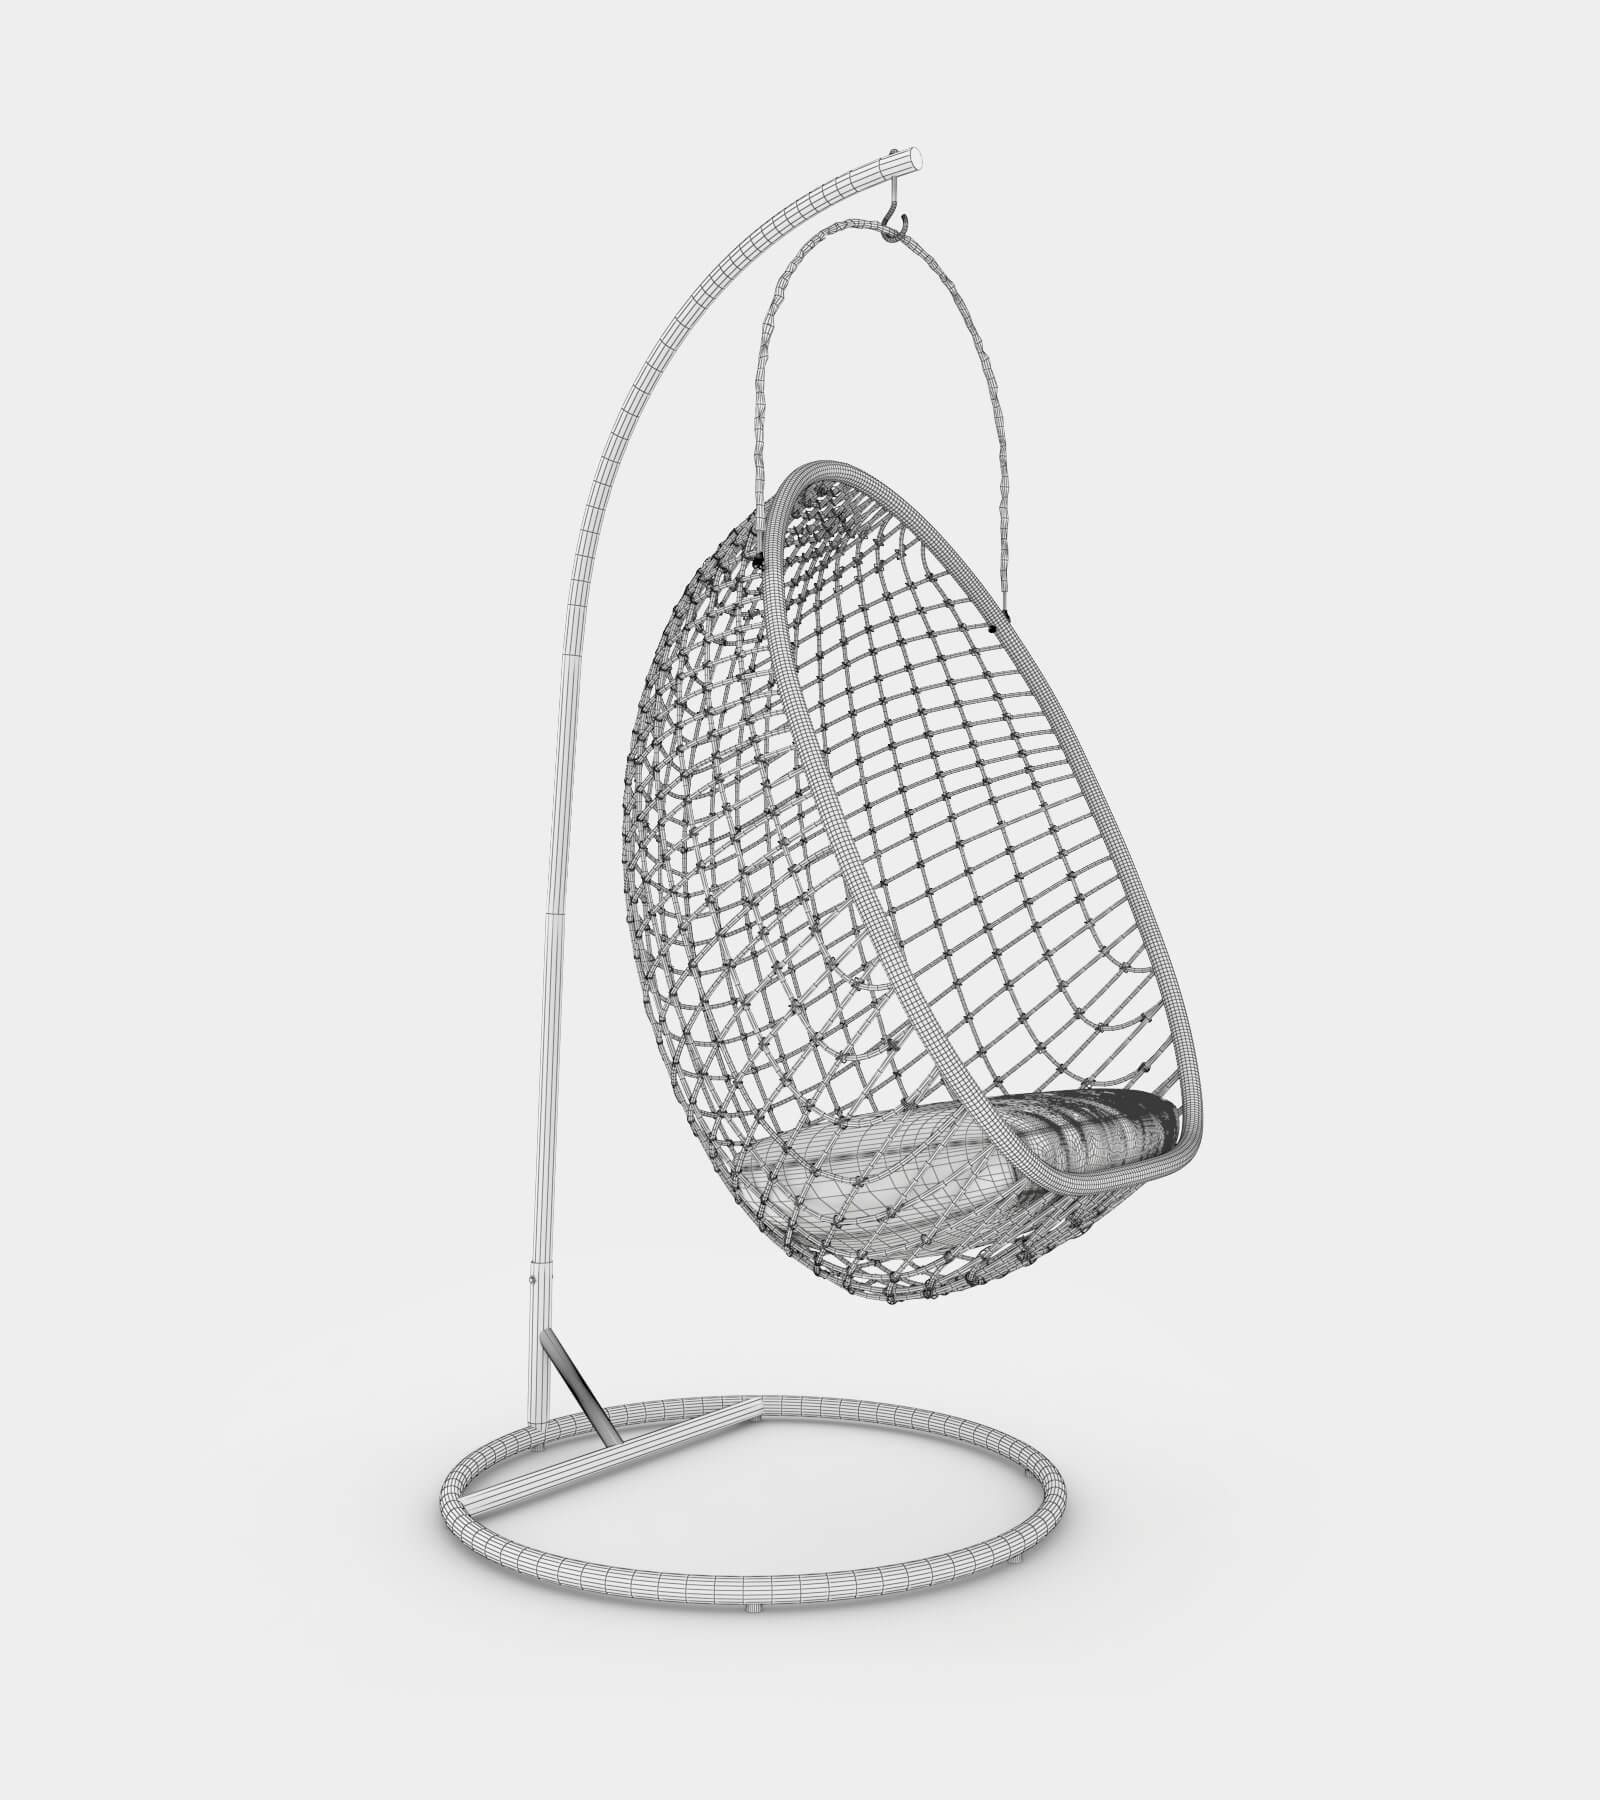 Chillout rattan hanging chair-wire-2 3D Model